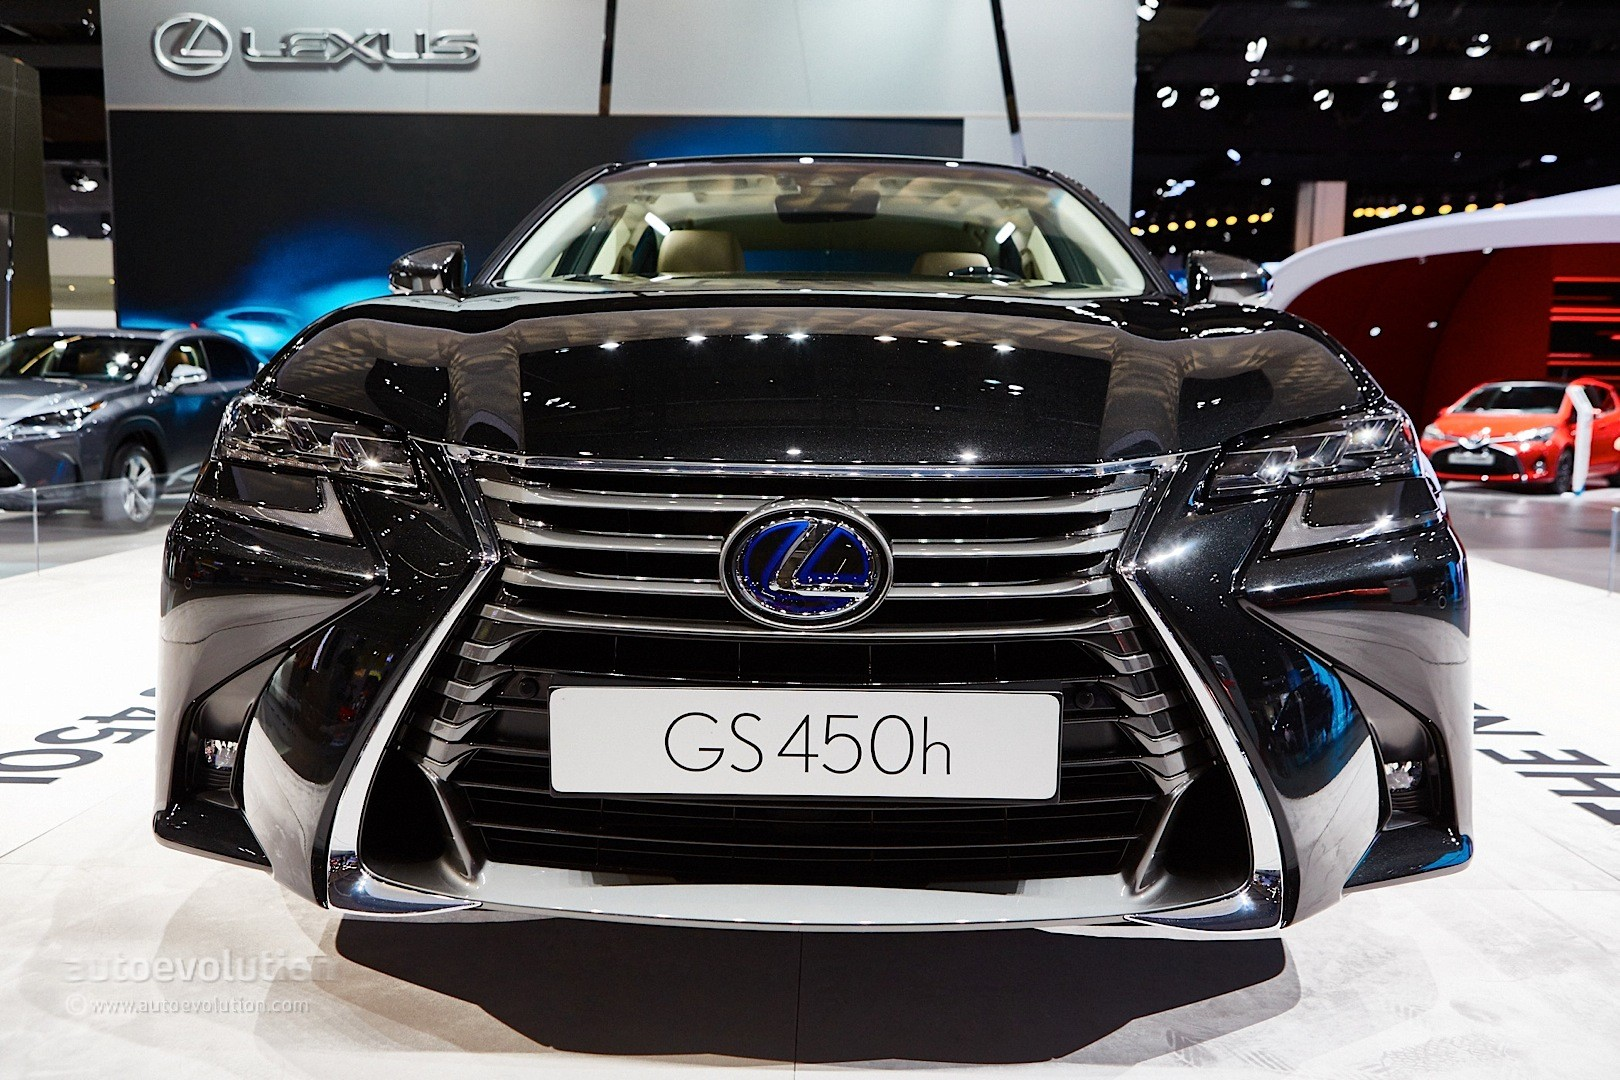 Used Lexus Gs 350 >> 2016 Lexus GS 450h Facelift Debuts with Spindle Grille 2.0 in Frankfurt - autoevolution